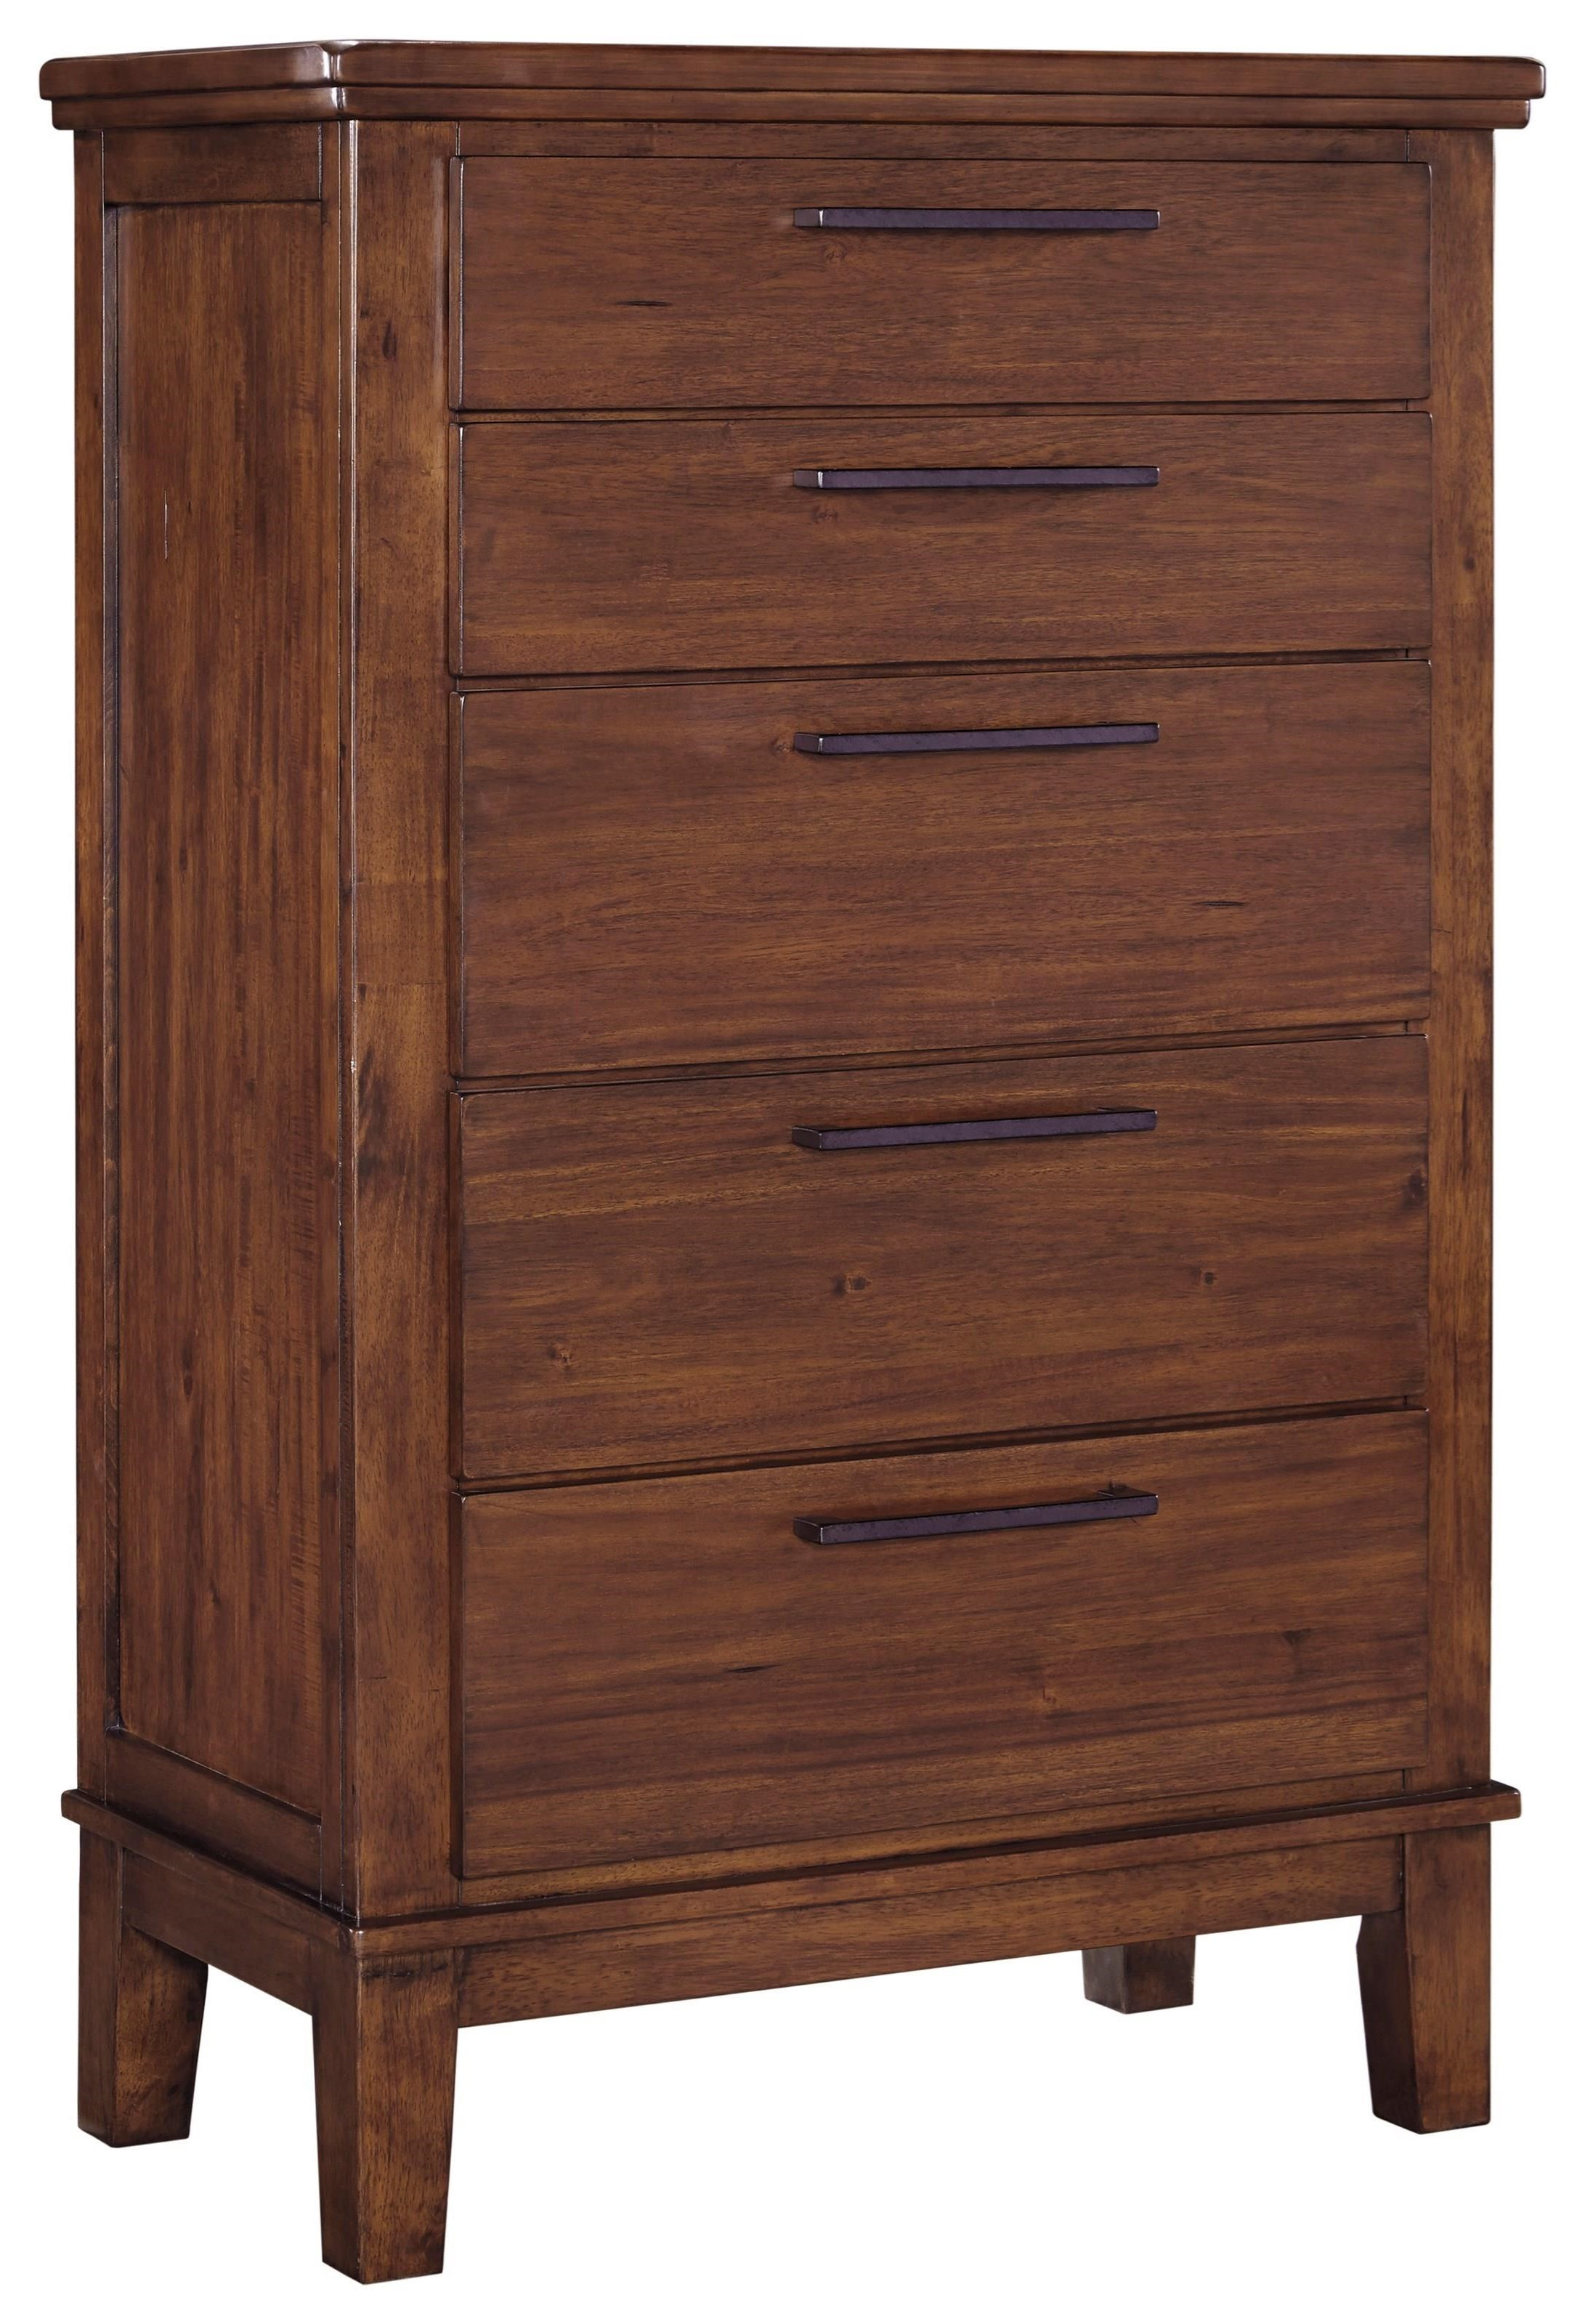 Cora Chest at Ruby Gordon Home